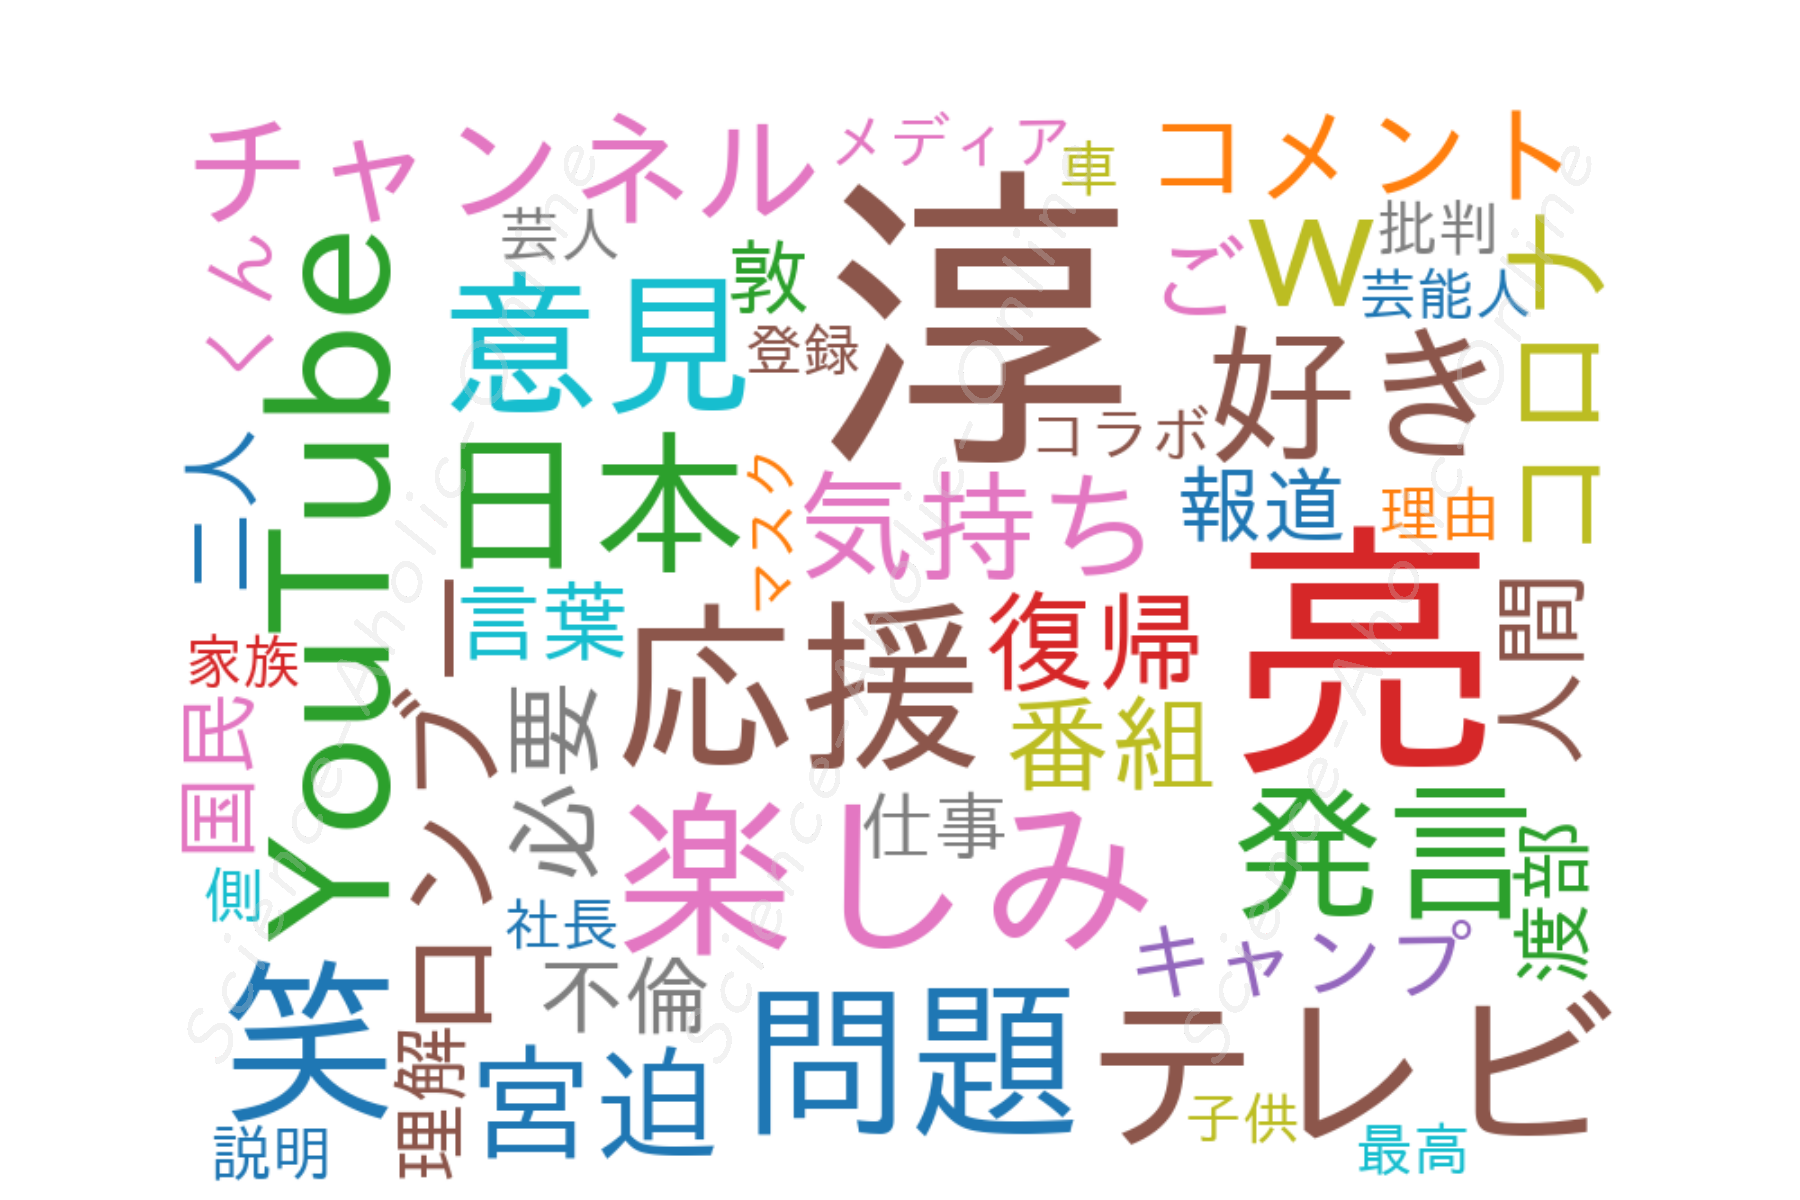 https://science-aholic-online.com/wp-content/uploads/2020/08/wordcloud_ロンブーチャンネル.png